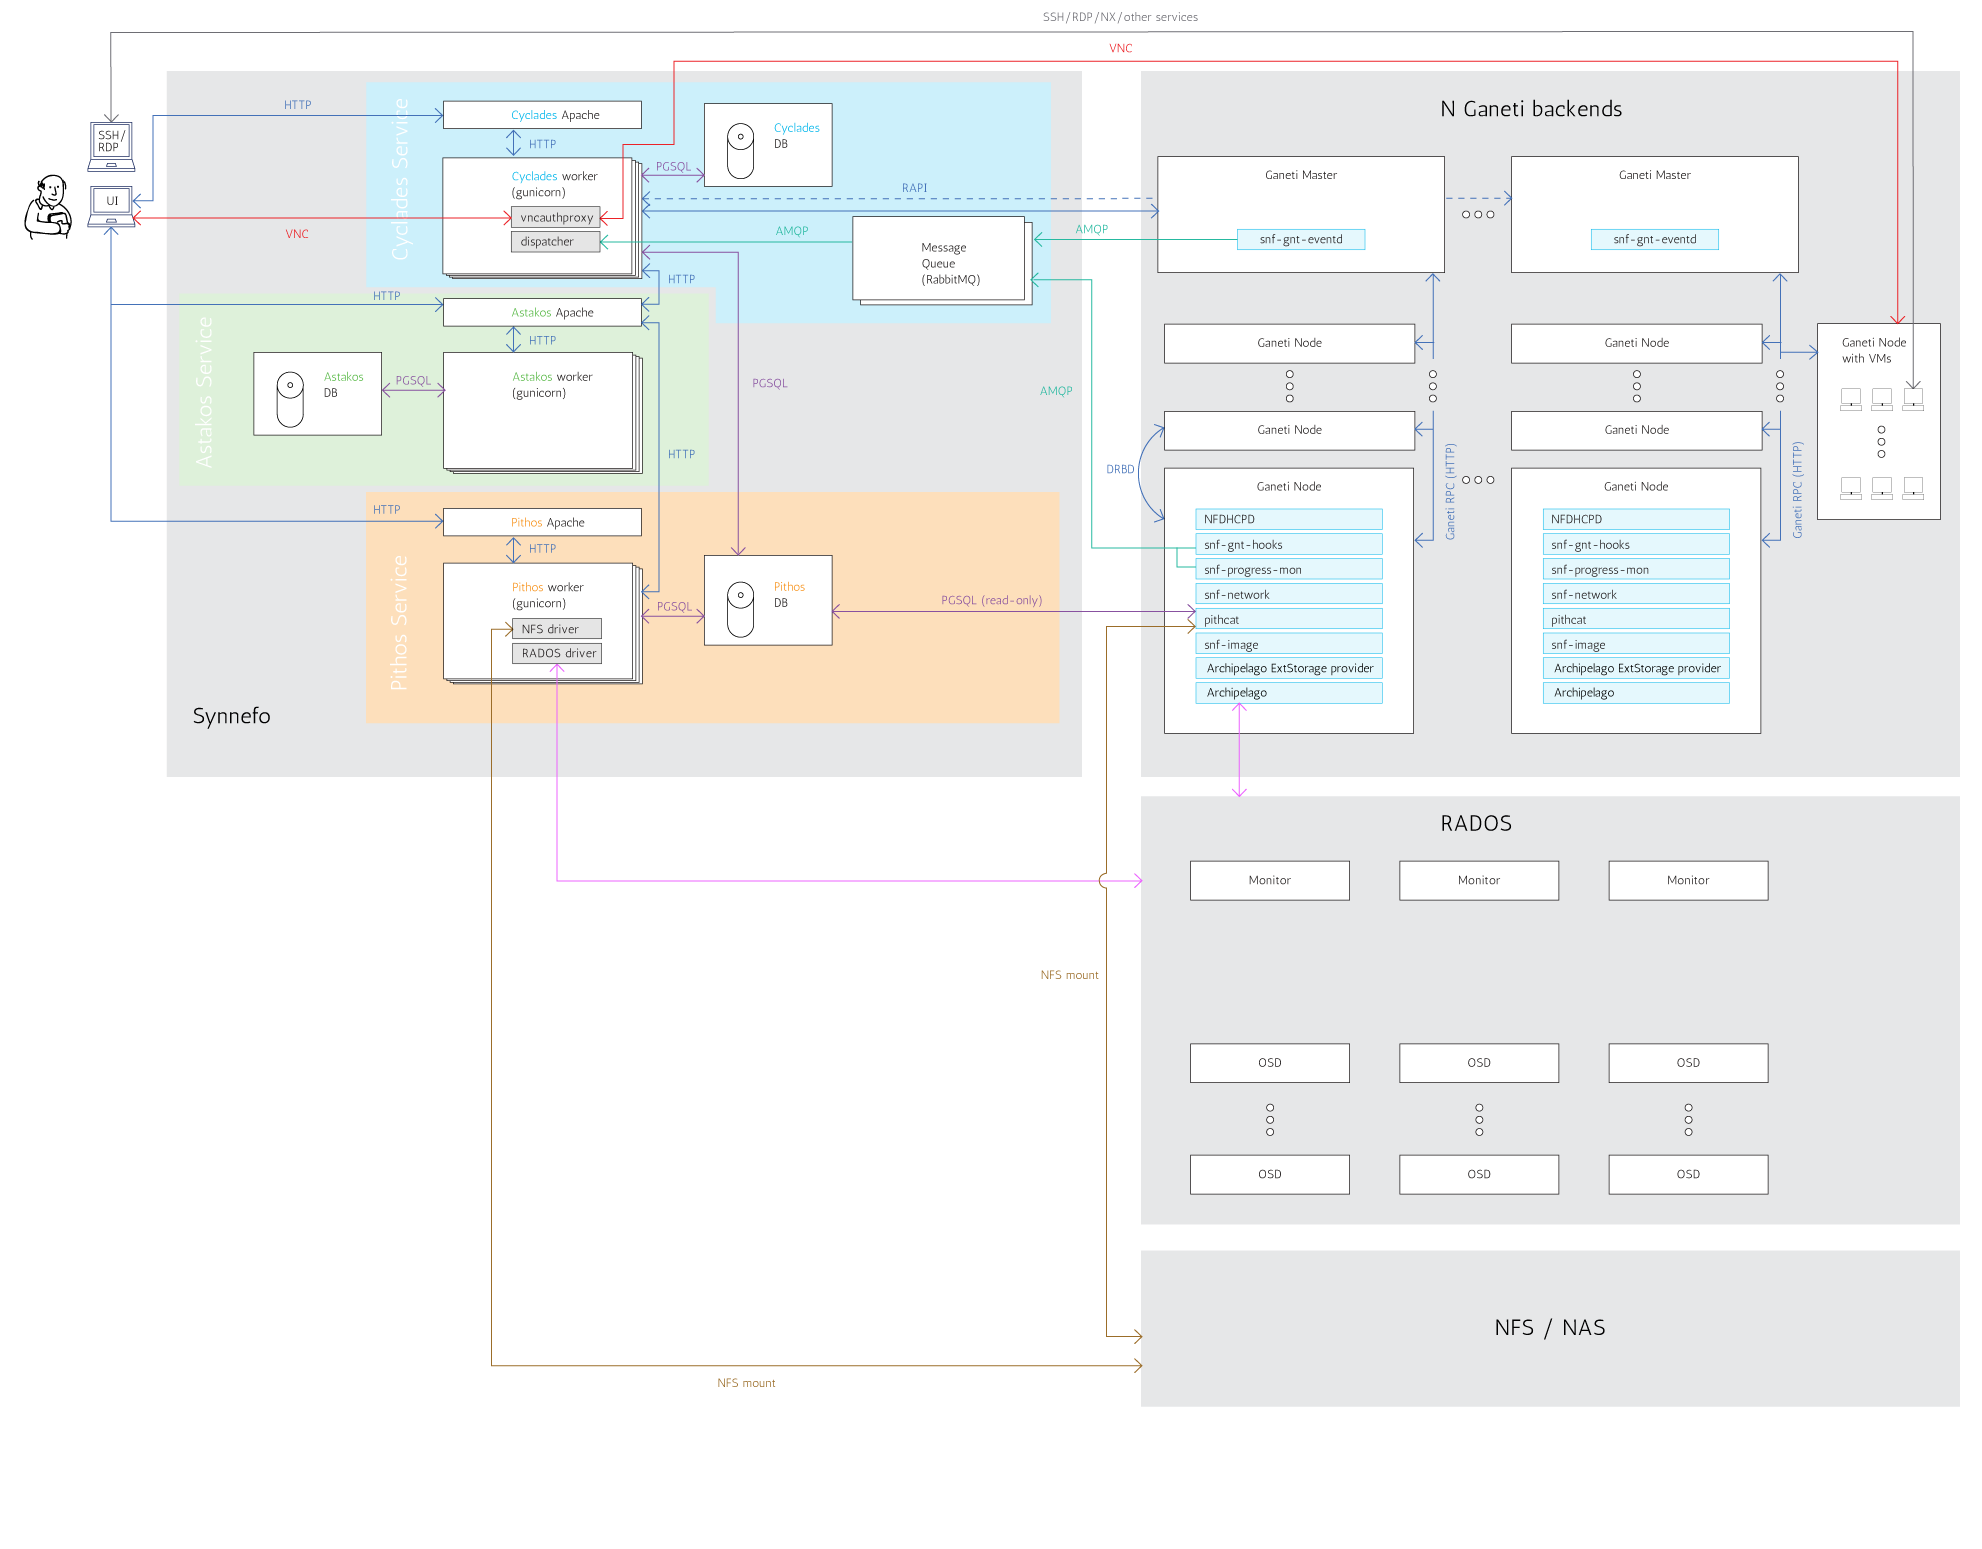 docs/images/synnefo-arch3.png